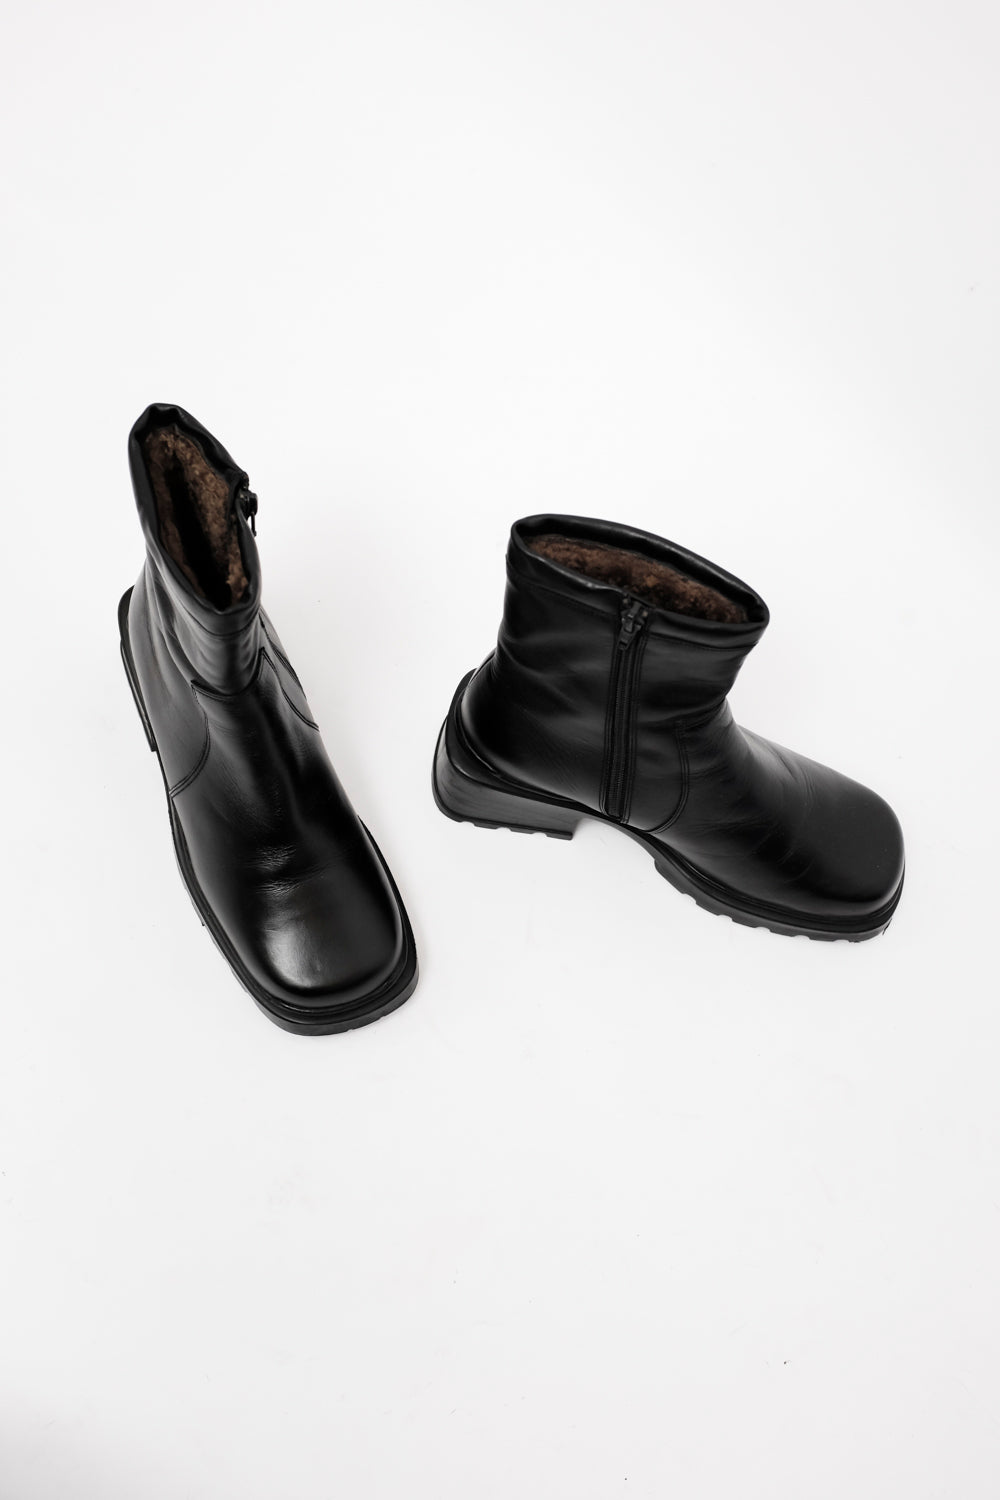 0021_DERBY LEATHER BOOTS 38